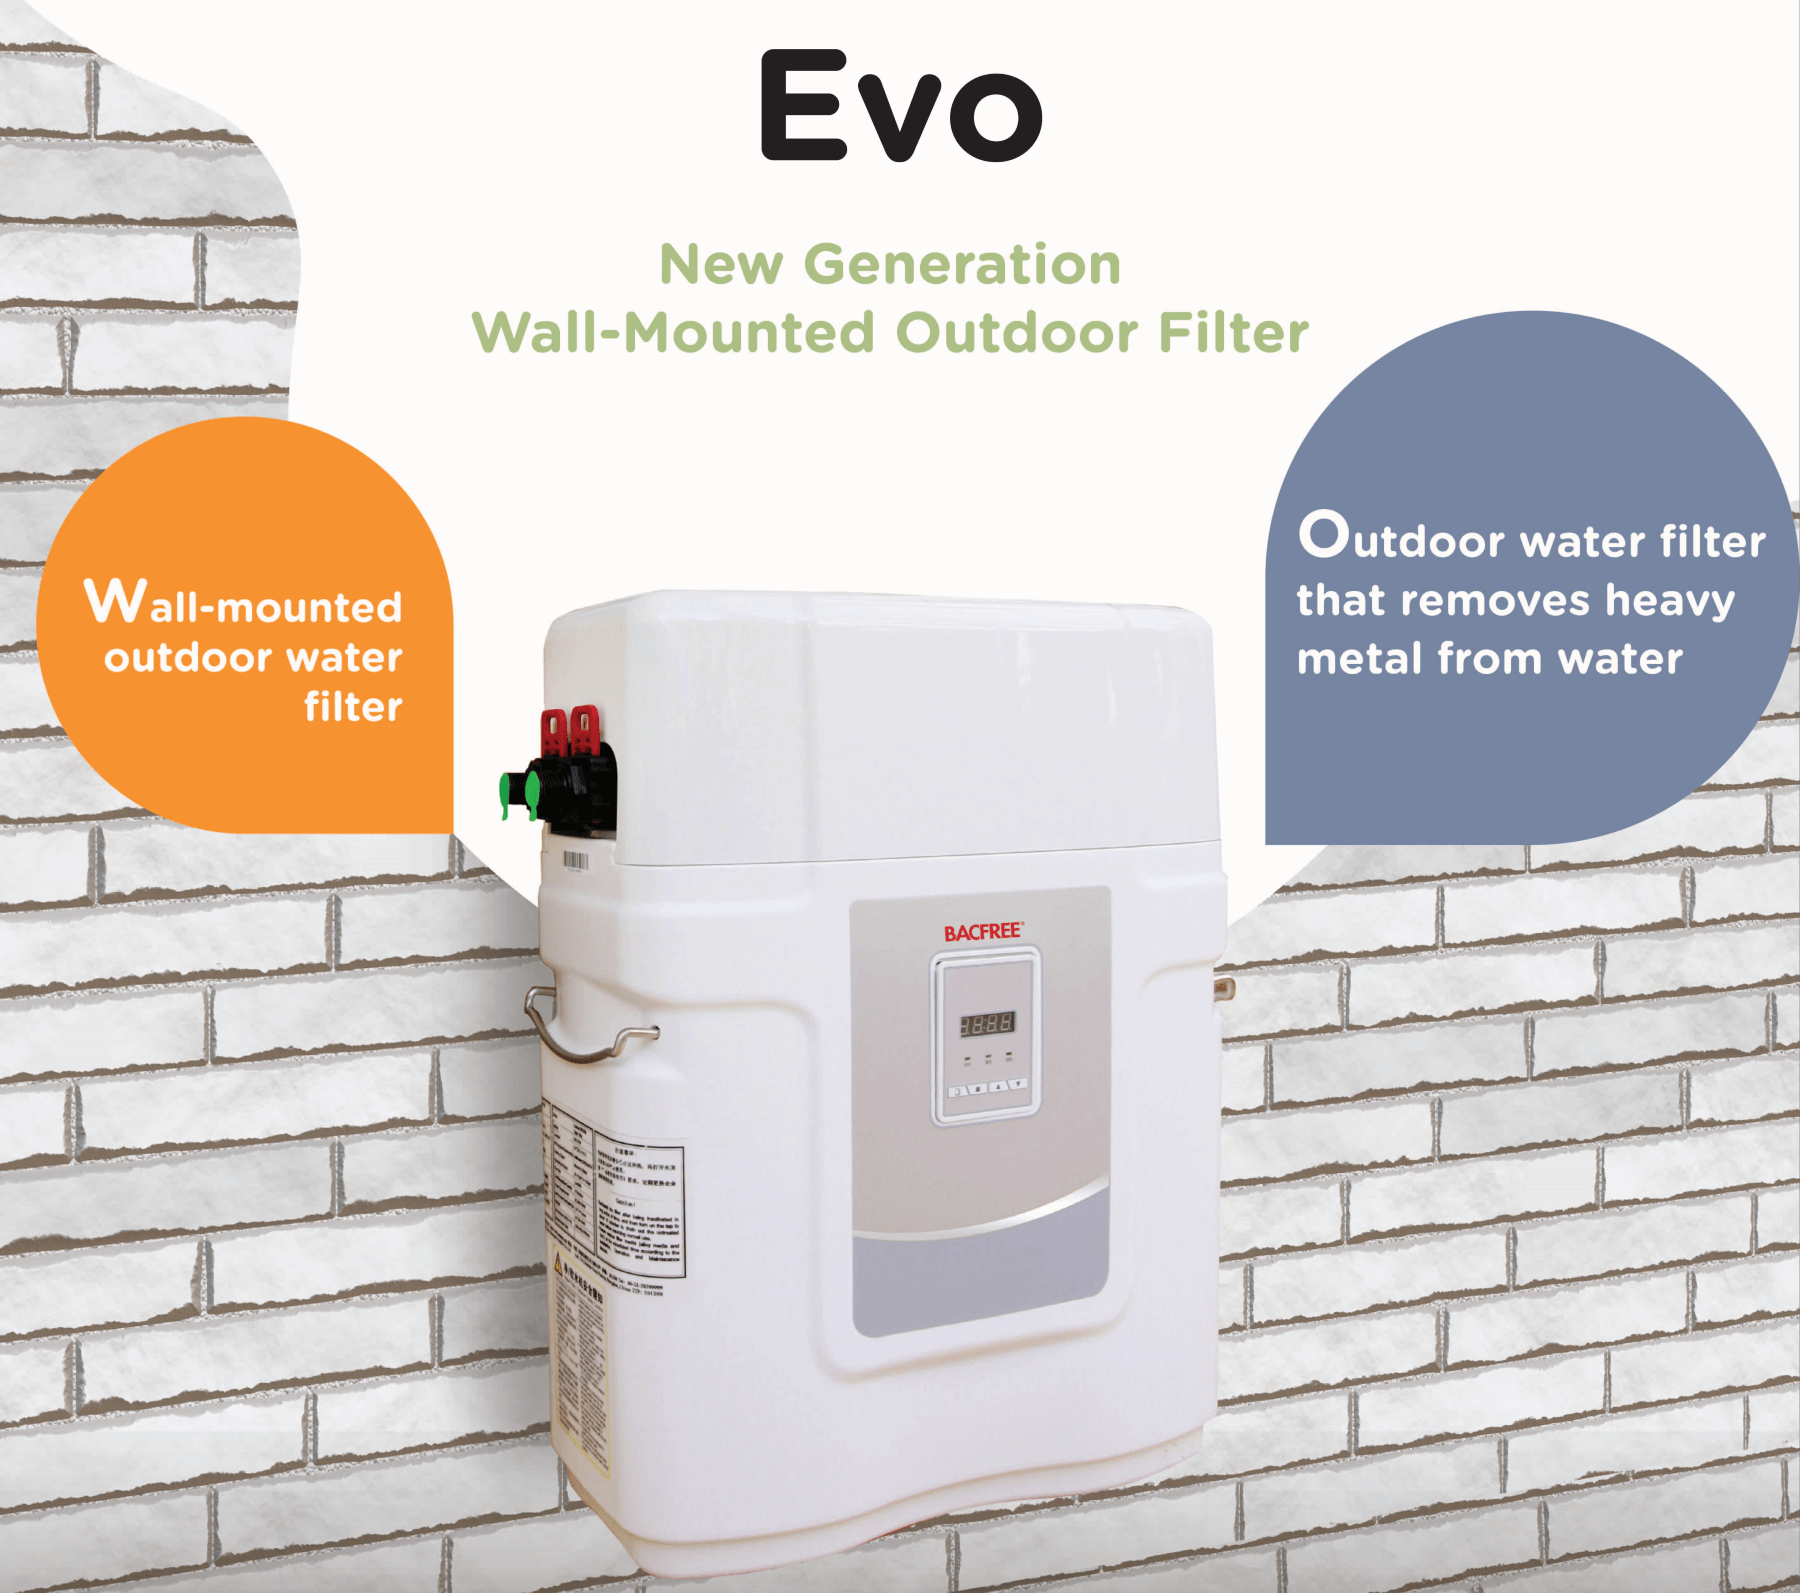 Evo Wall-Mounted Outdoor Filter